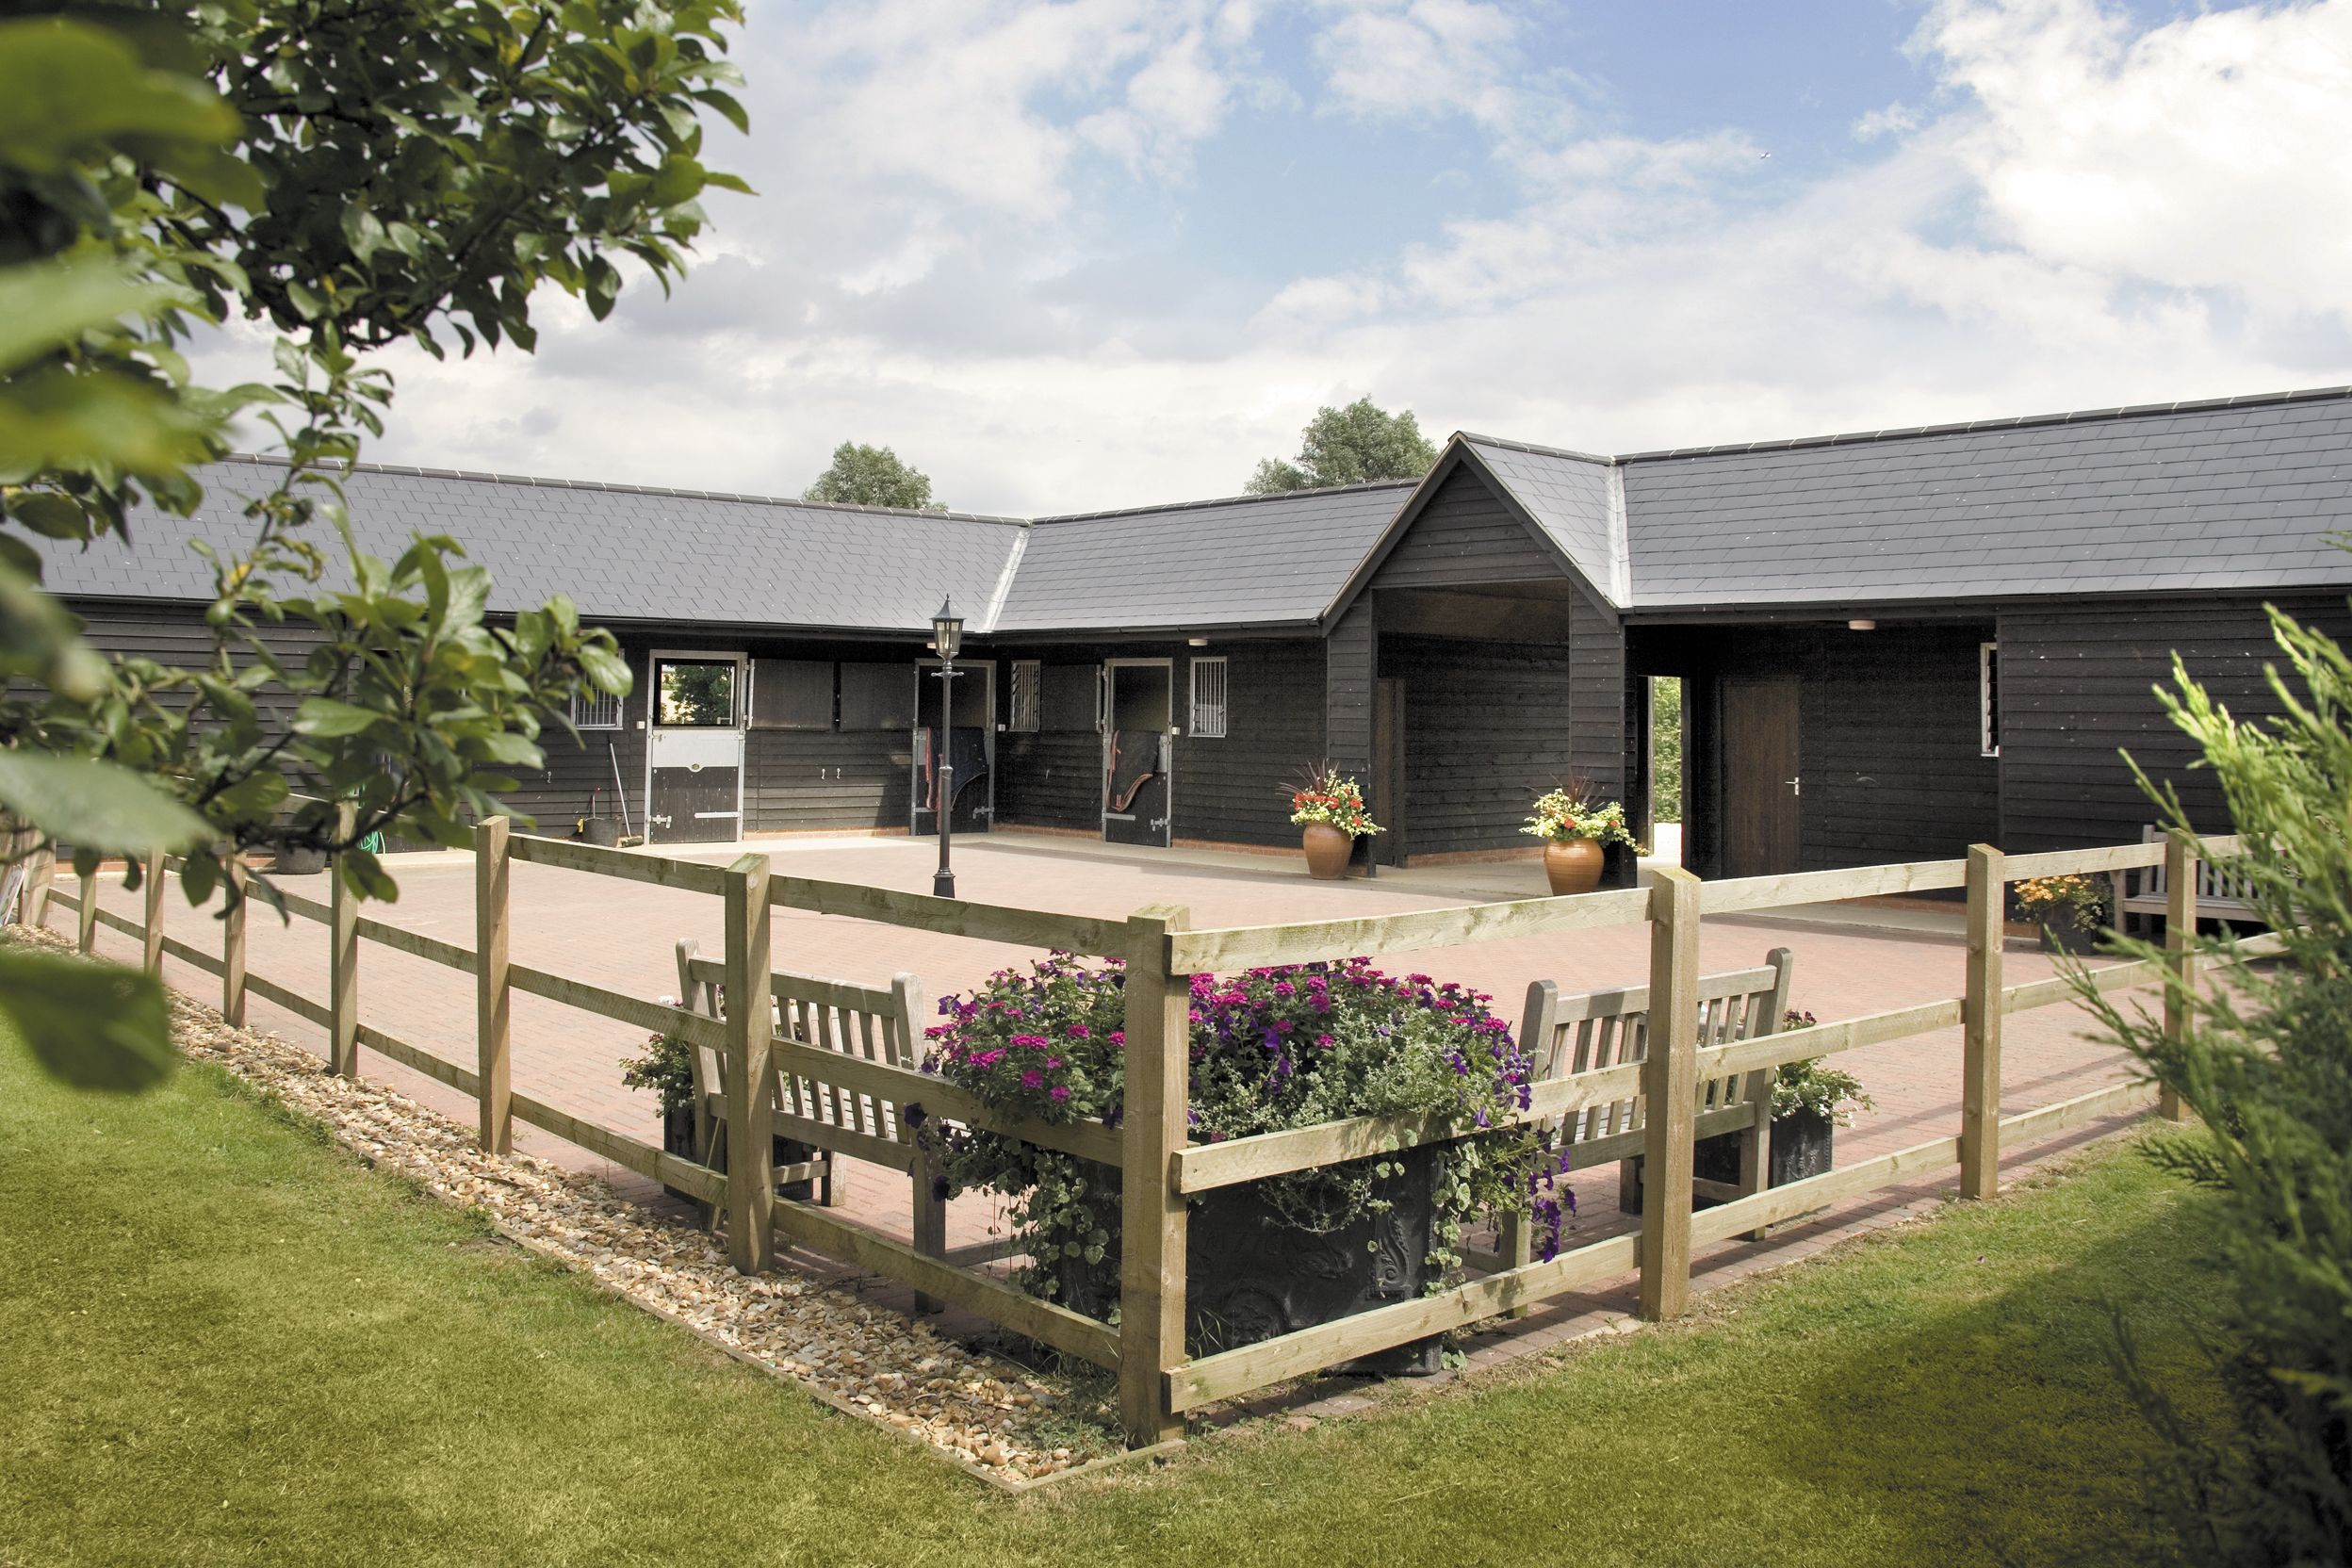 L shaped yard designed to blend in with the surrounding for L shaped shed designs